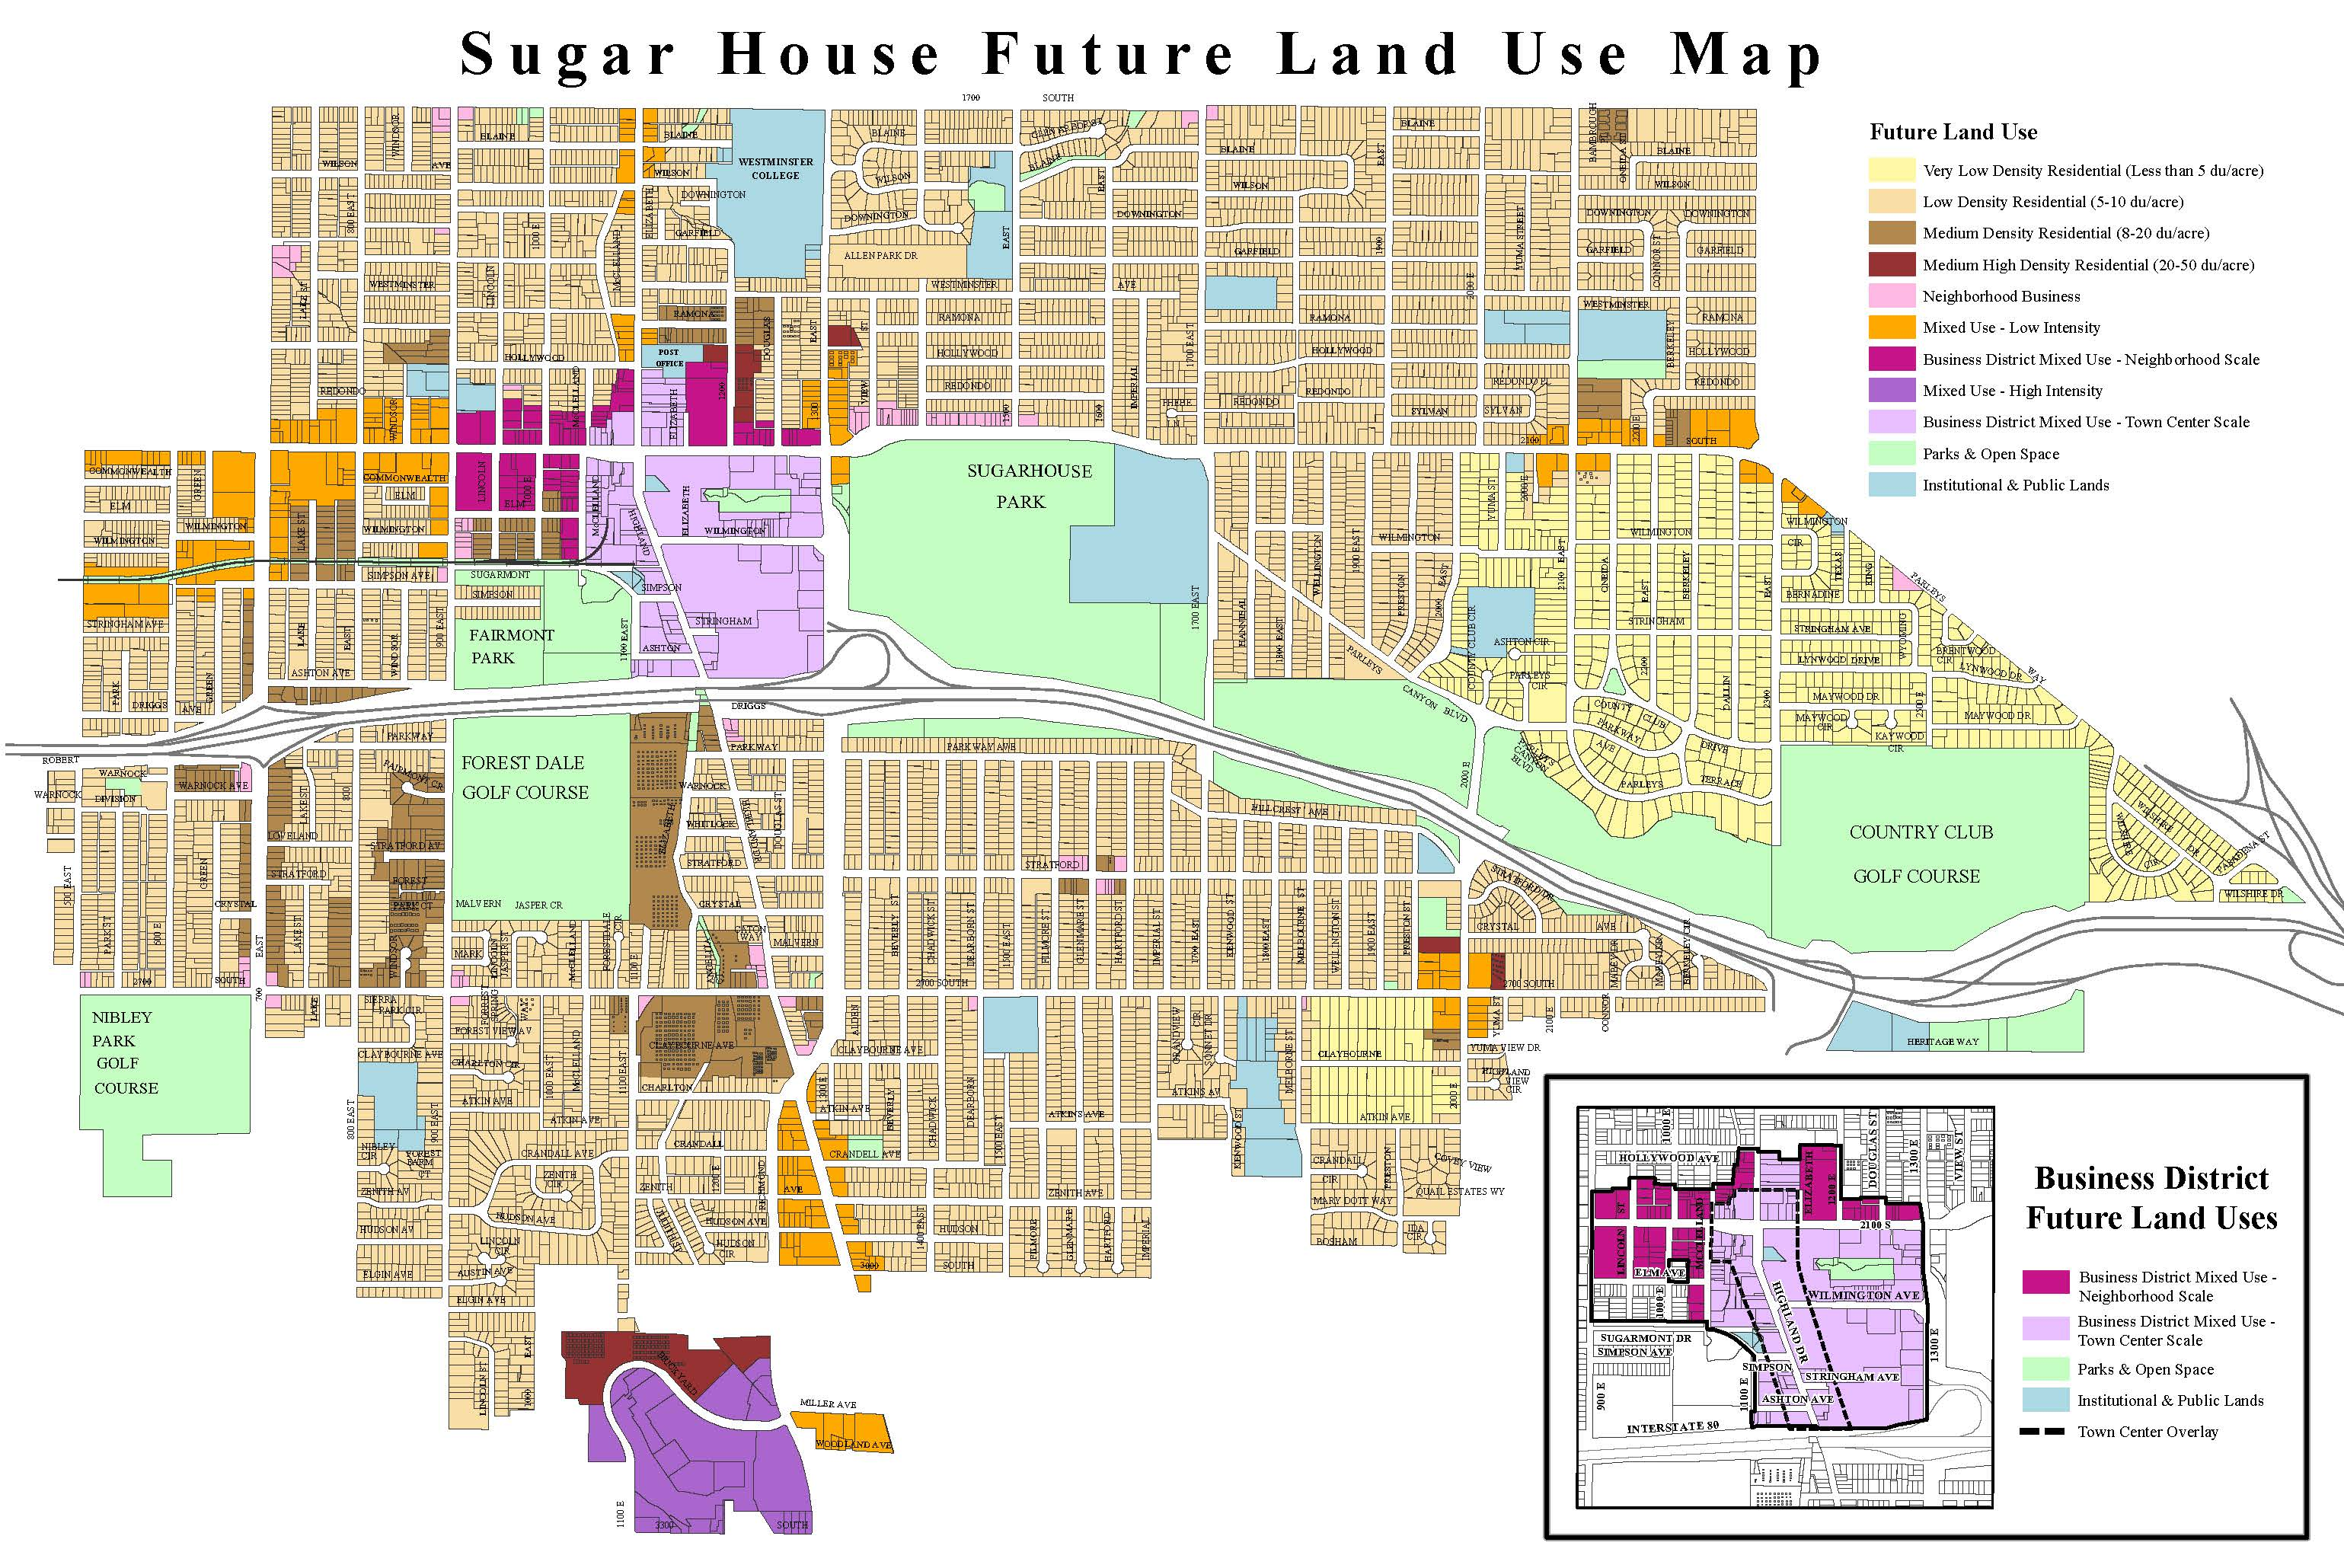 Sugar House Master Plan   Sugar House Community CouncilYou   also view the Sugar House Future Land Use Map to learn more about current zoning of our neighborhoods